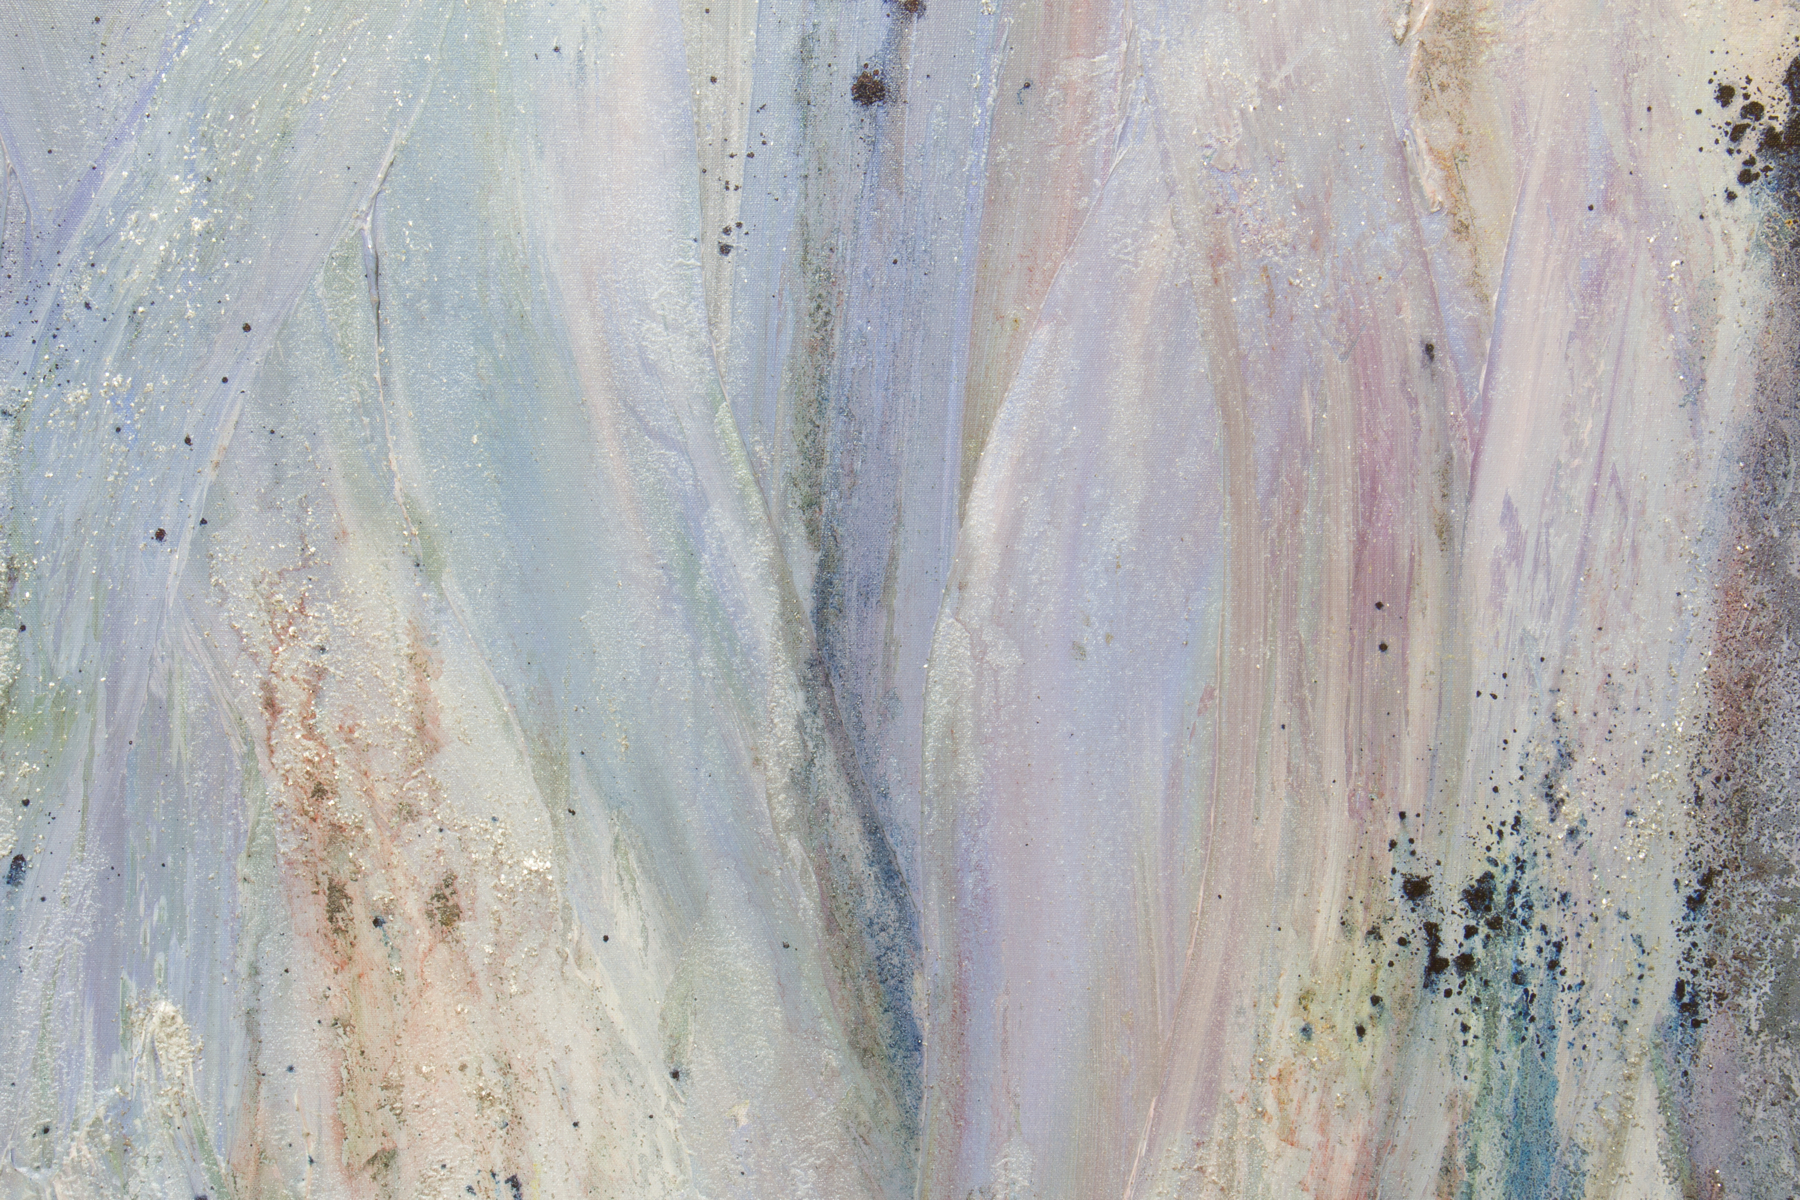 Detail of Untitled Waterfall